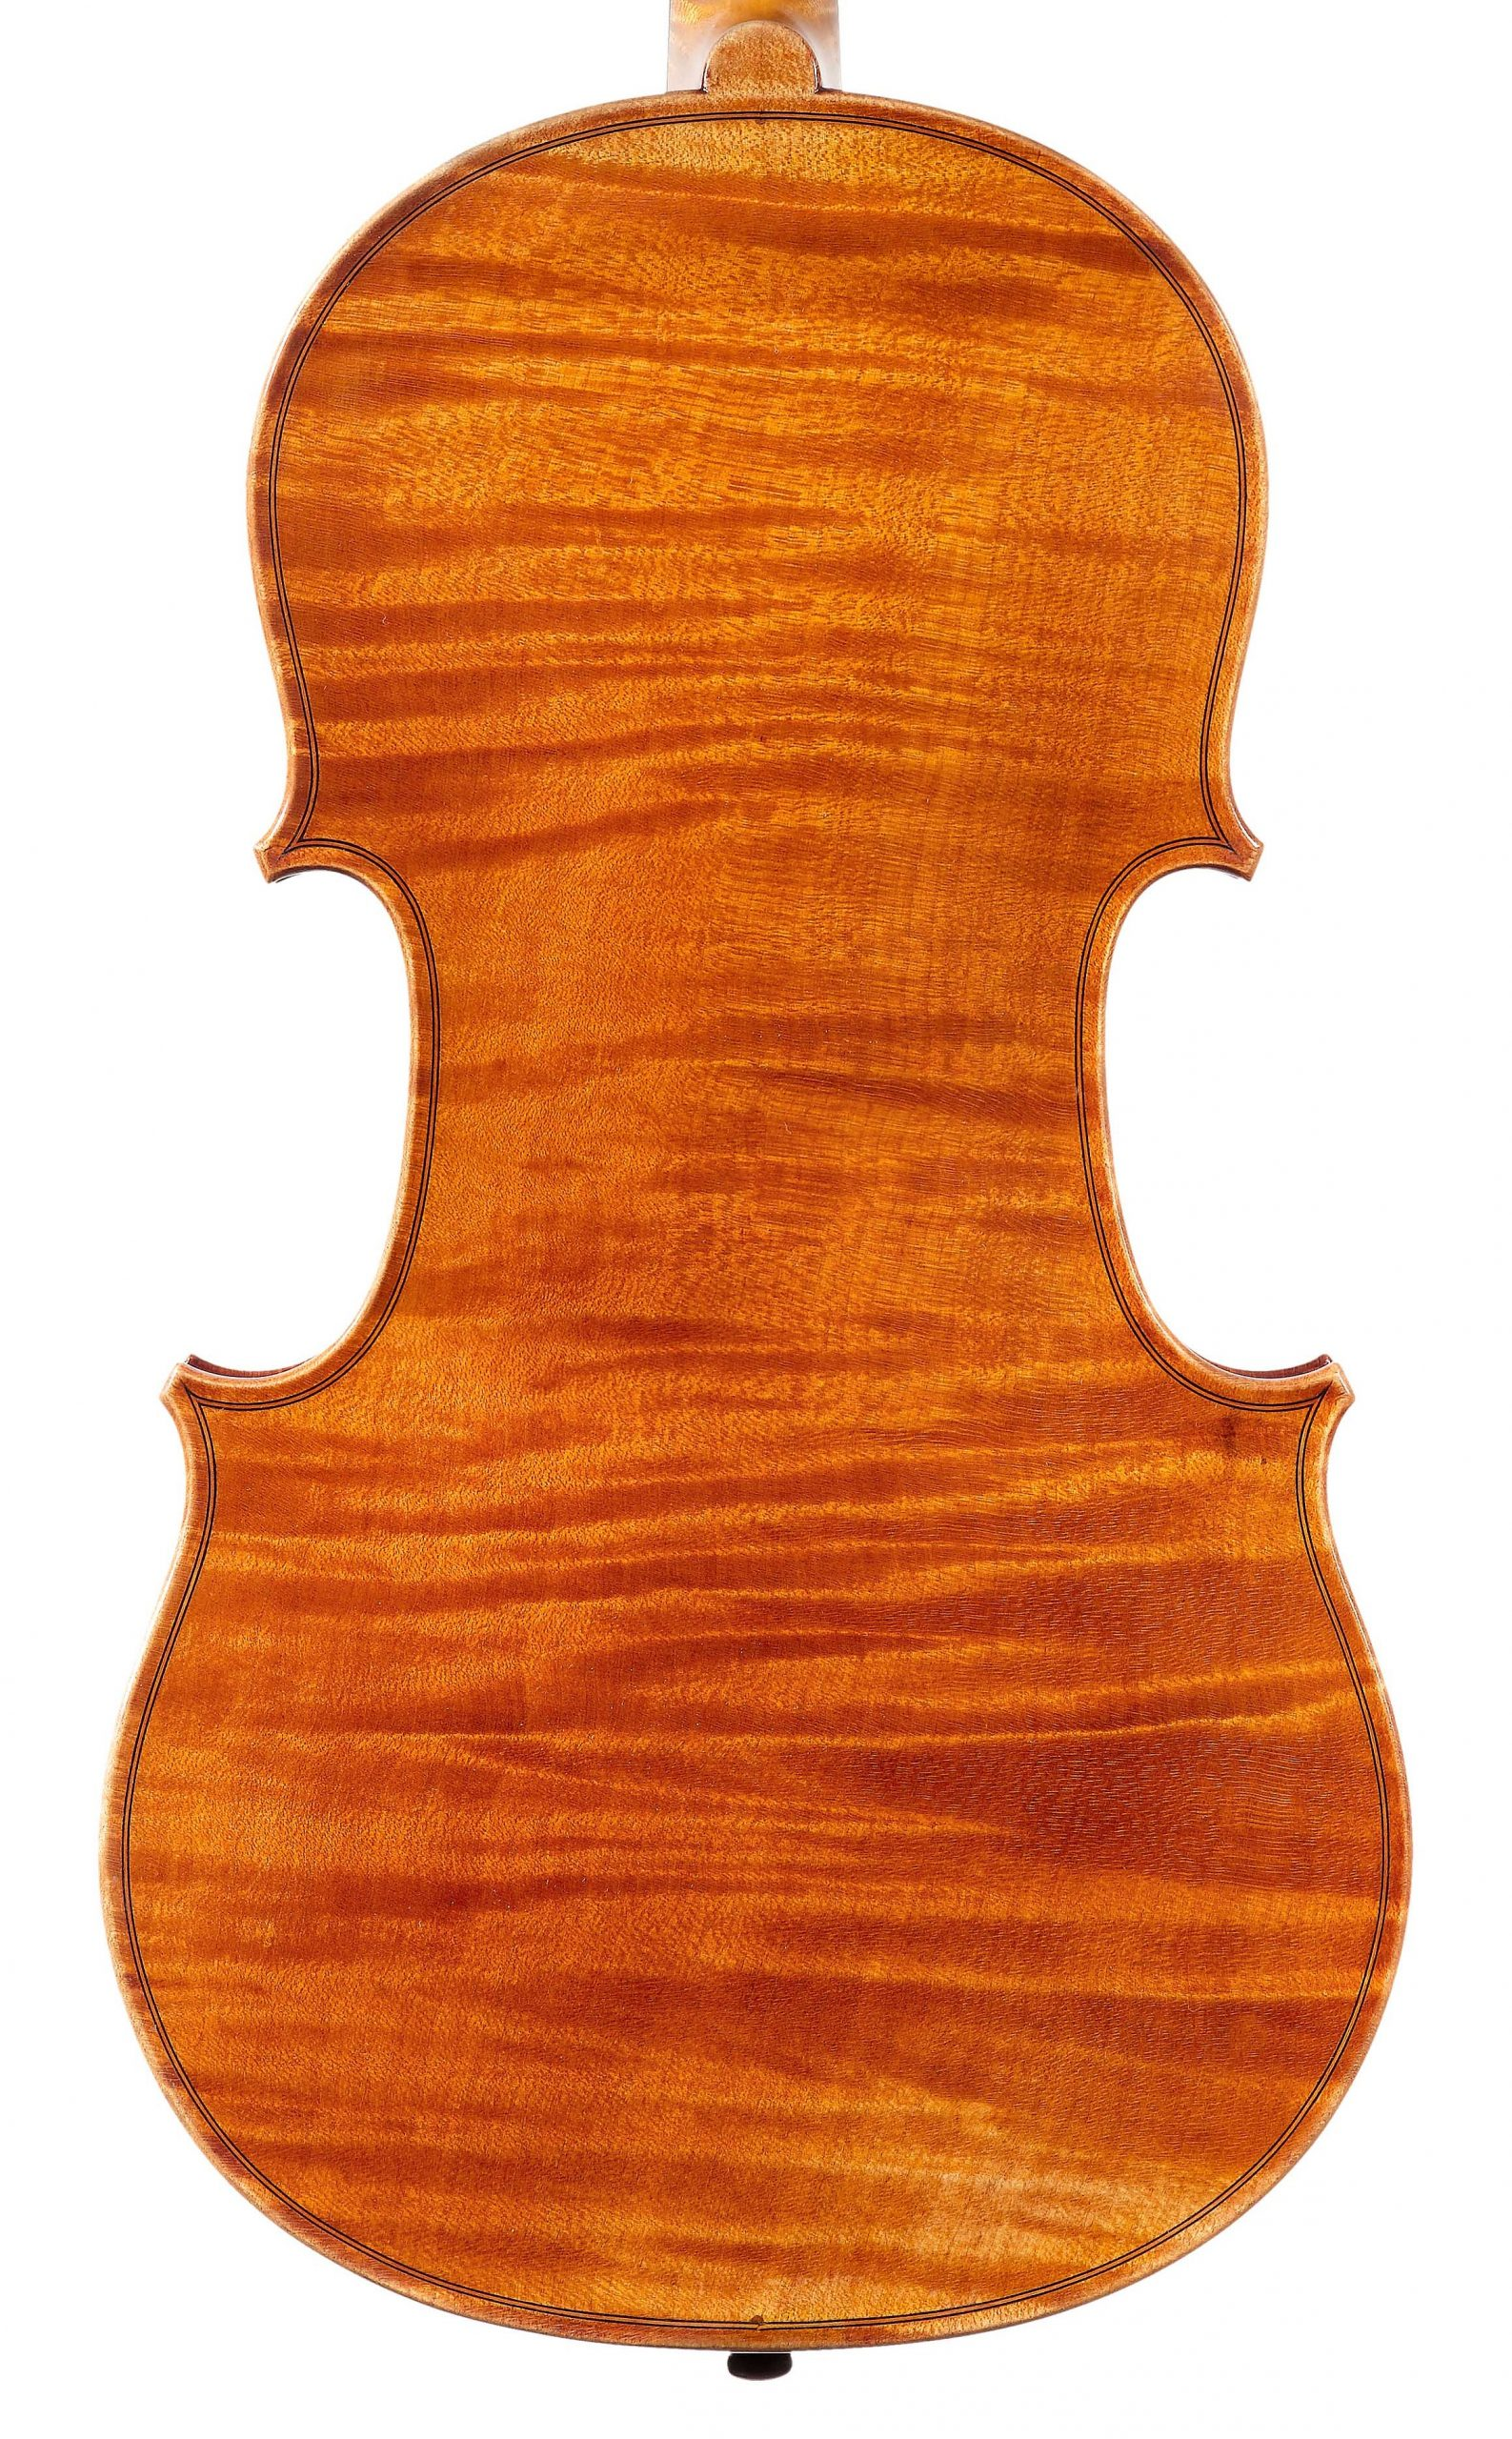 Back of St. Mathieu viola from the Evangelists quartet by JB Vuillaume, dated 1863